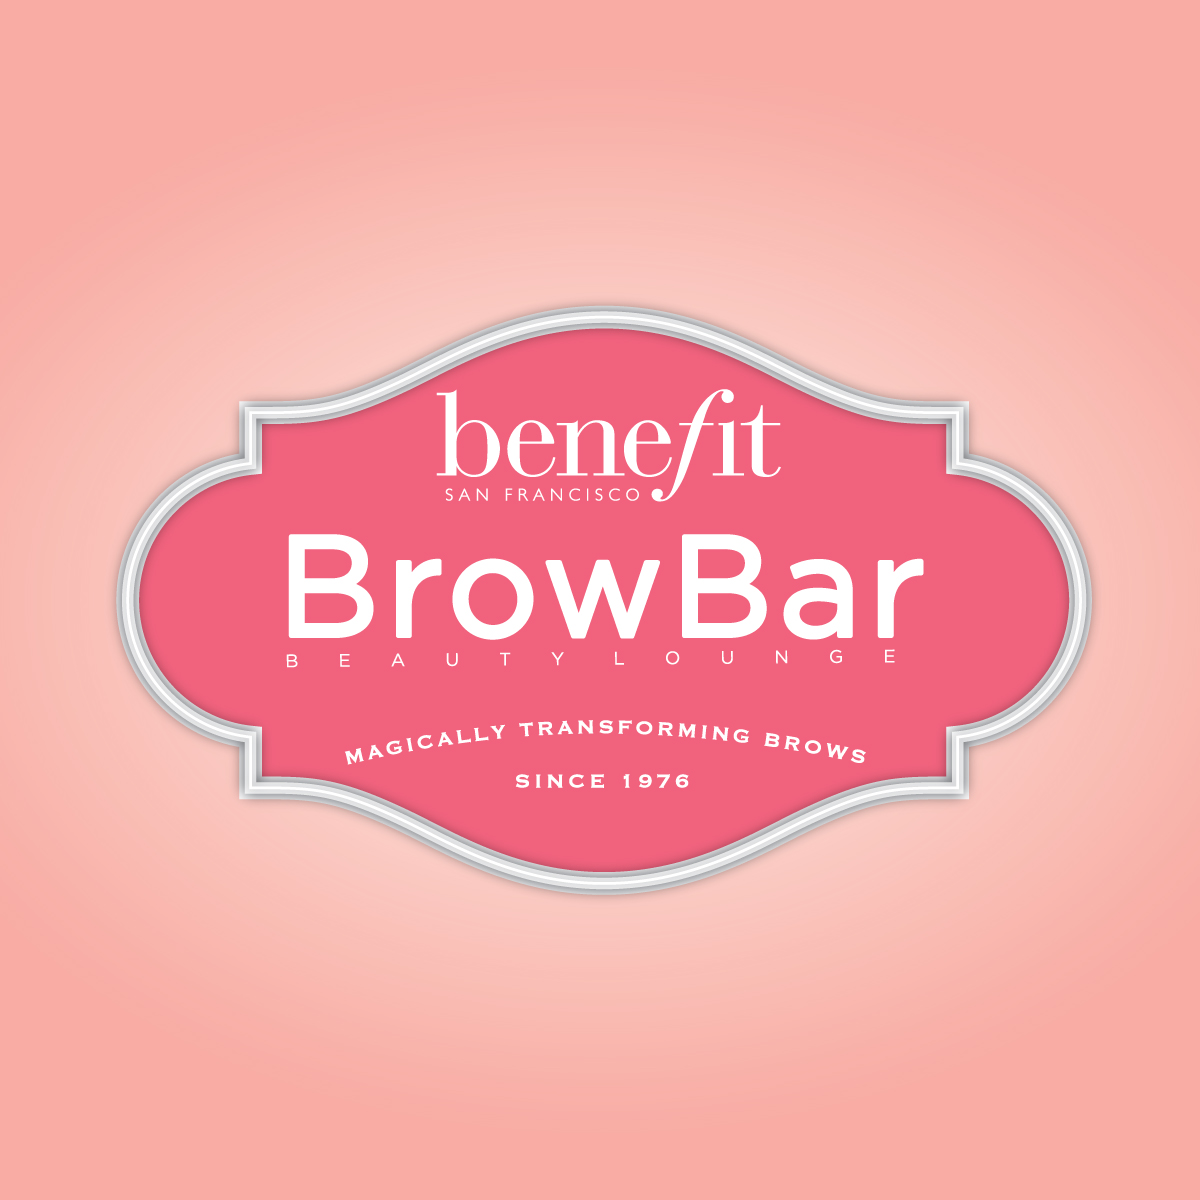 Benefit Brow Bar by Benefit Cosmetics